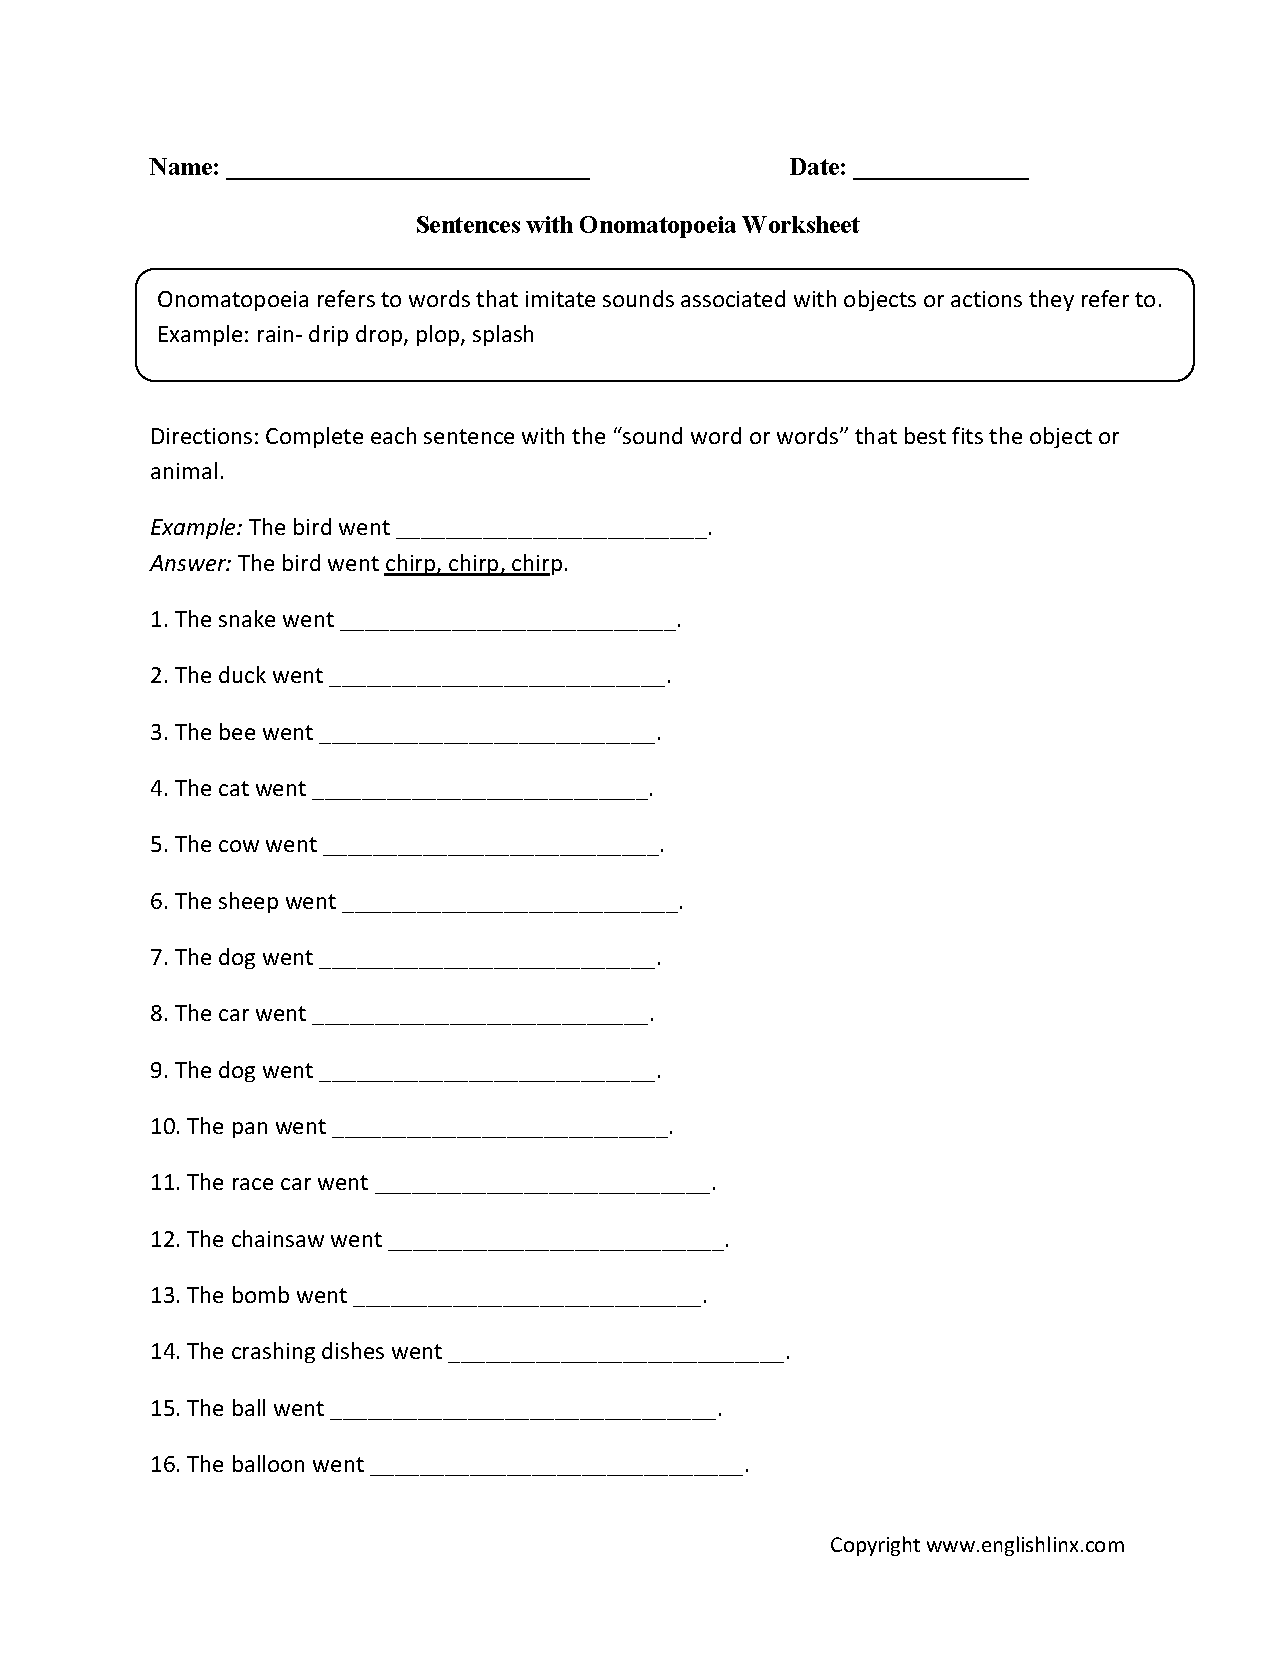 Sentences With Onomatopoeia Worksheet